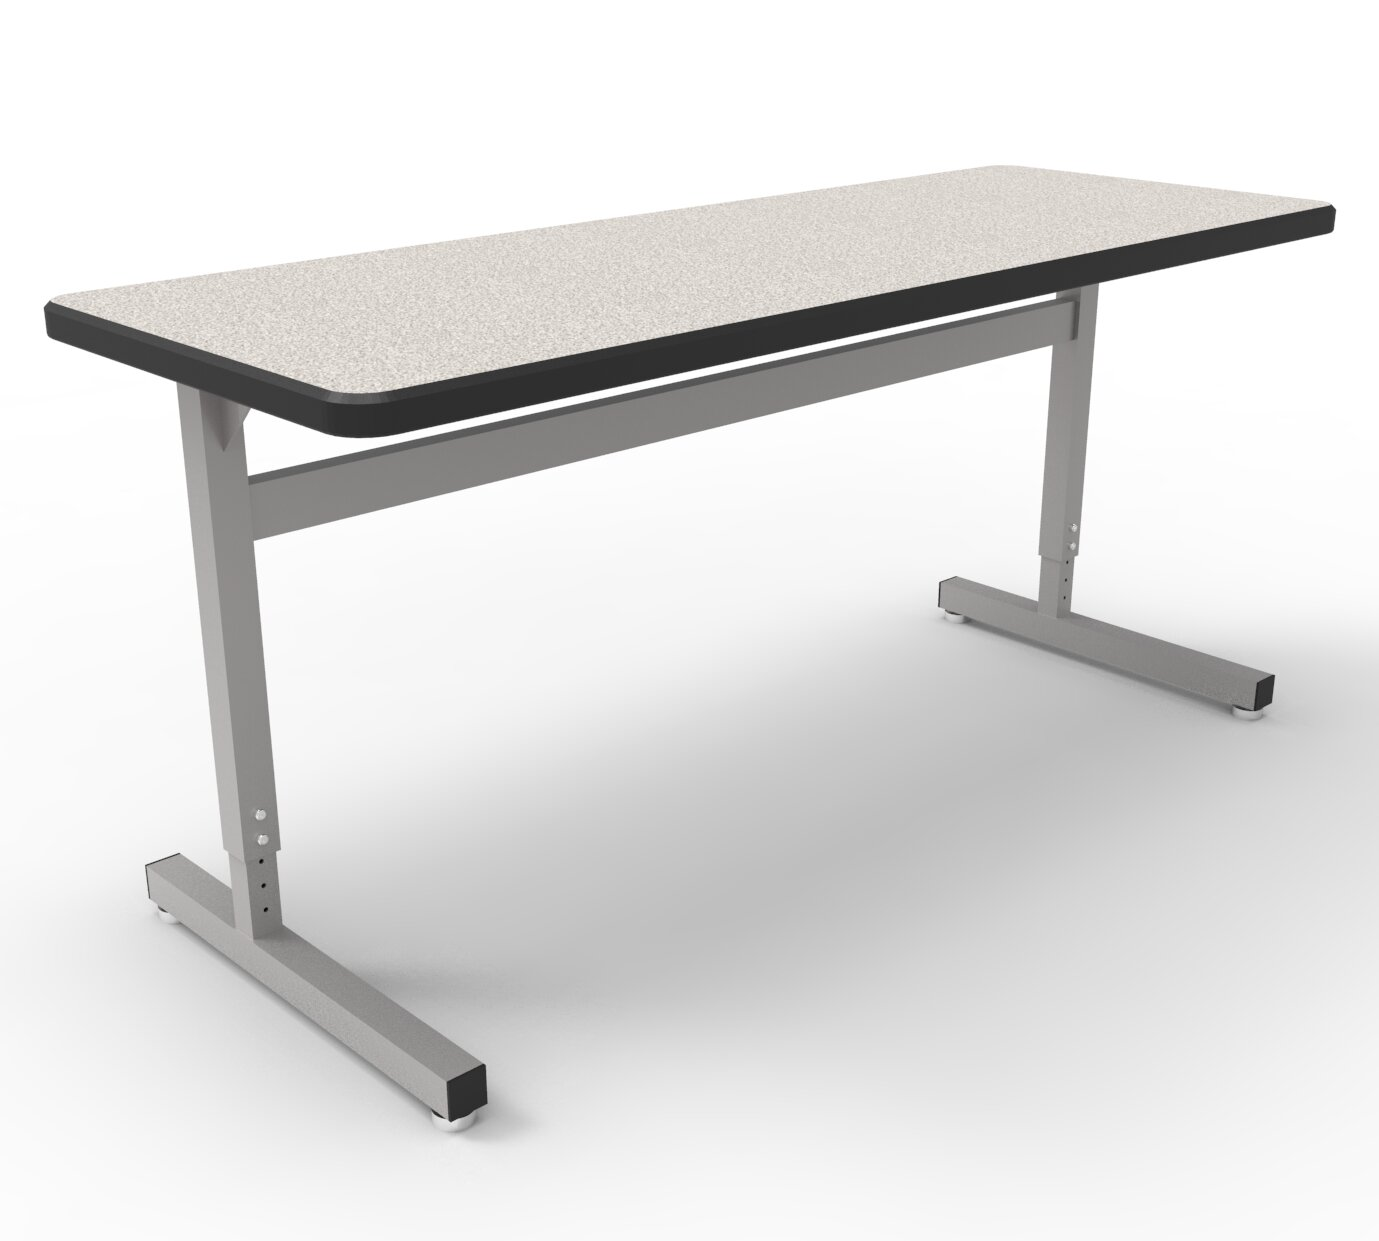 WB Manufacturing UneT Manufactured Wood Adjustable Height Training - Adjustable height training table